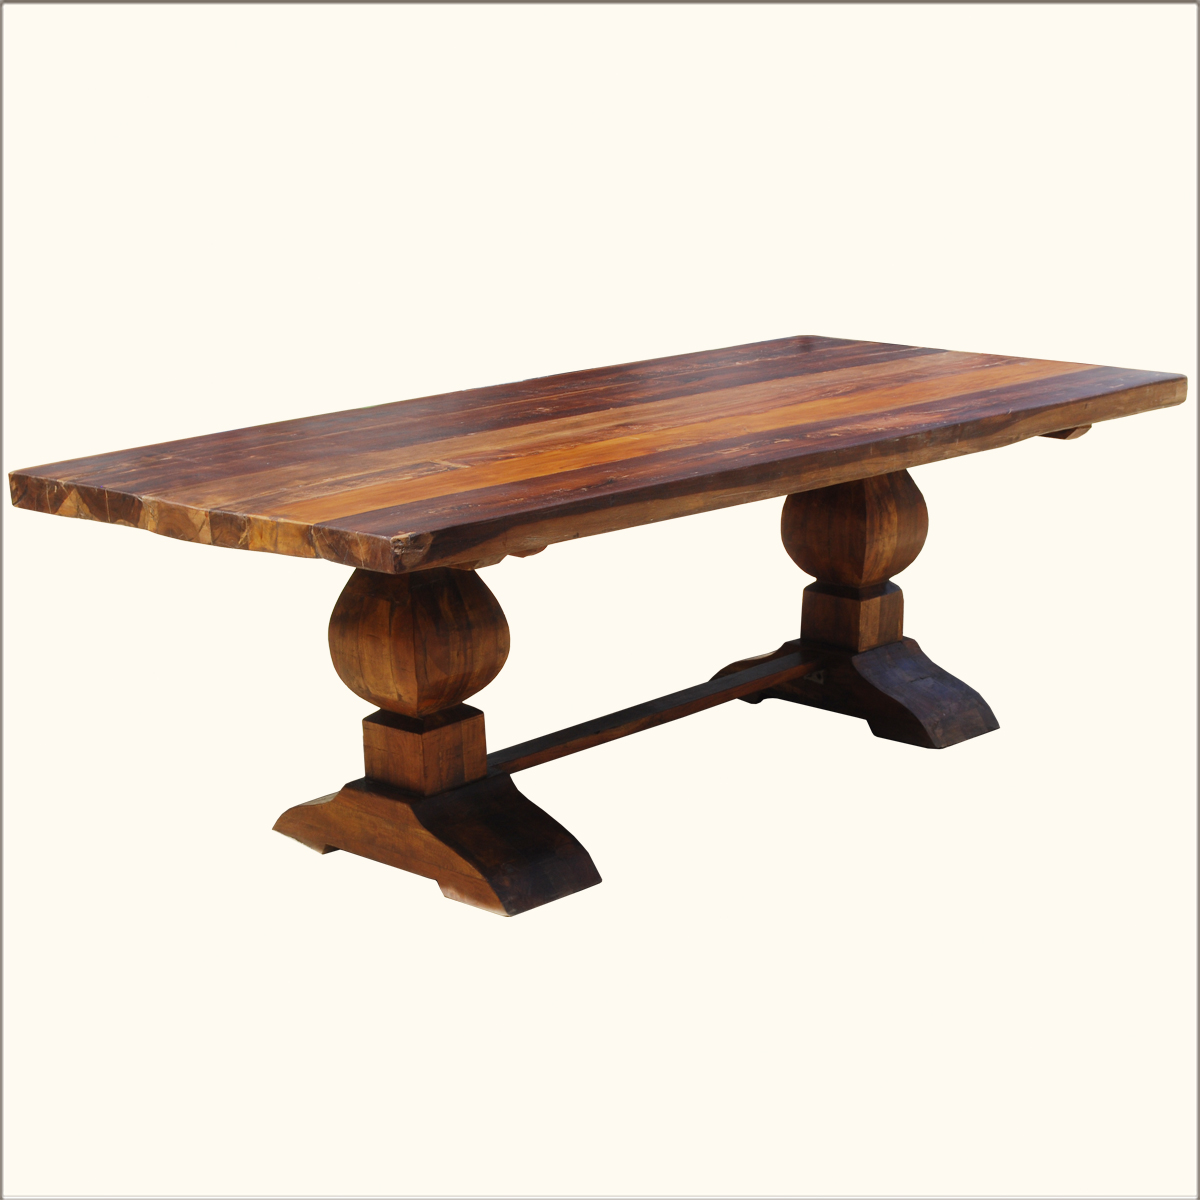 Rustic reclaimed wood double trestle pedestal large 10 Rustic wood dining table